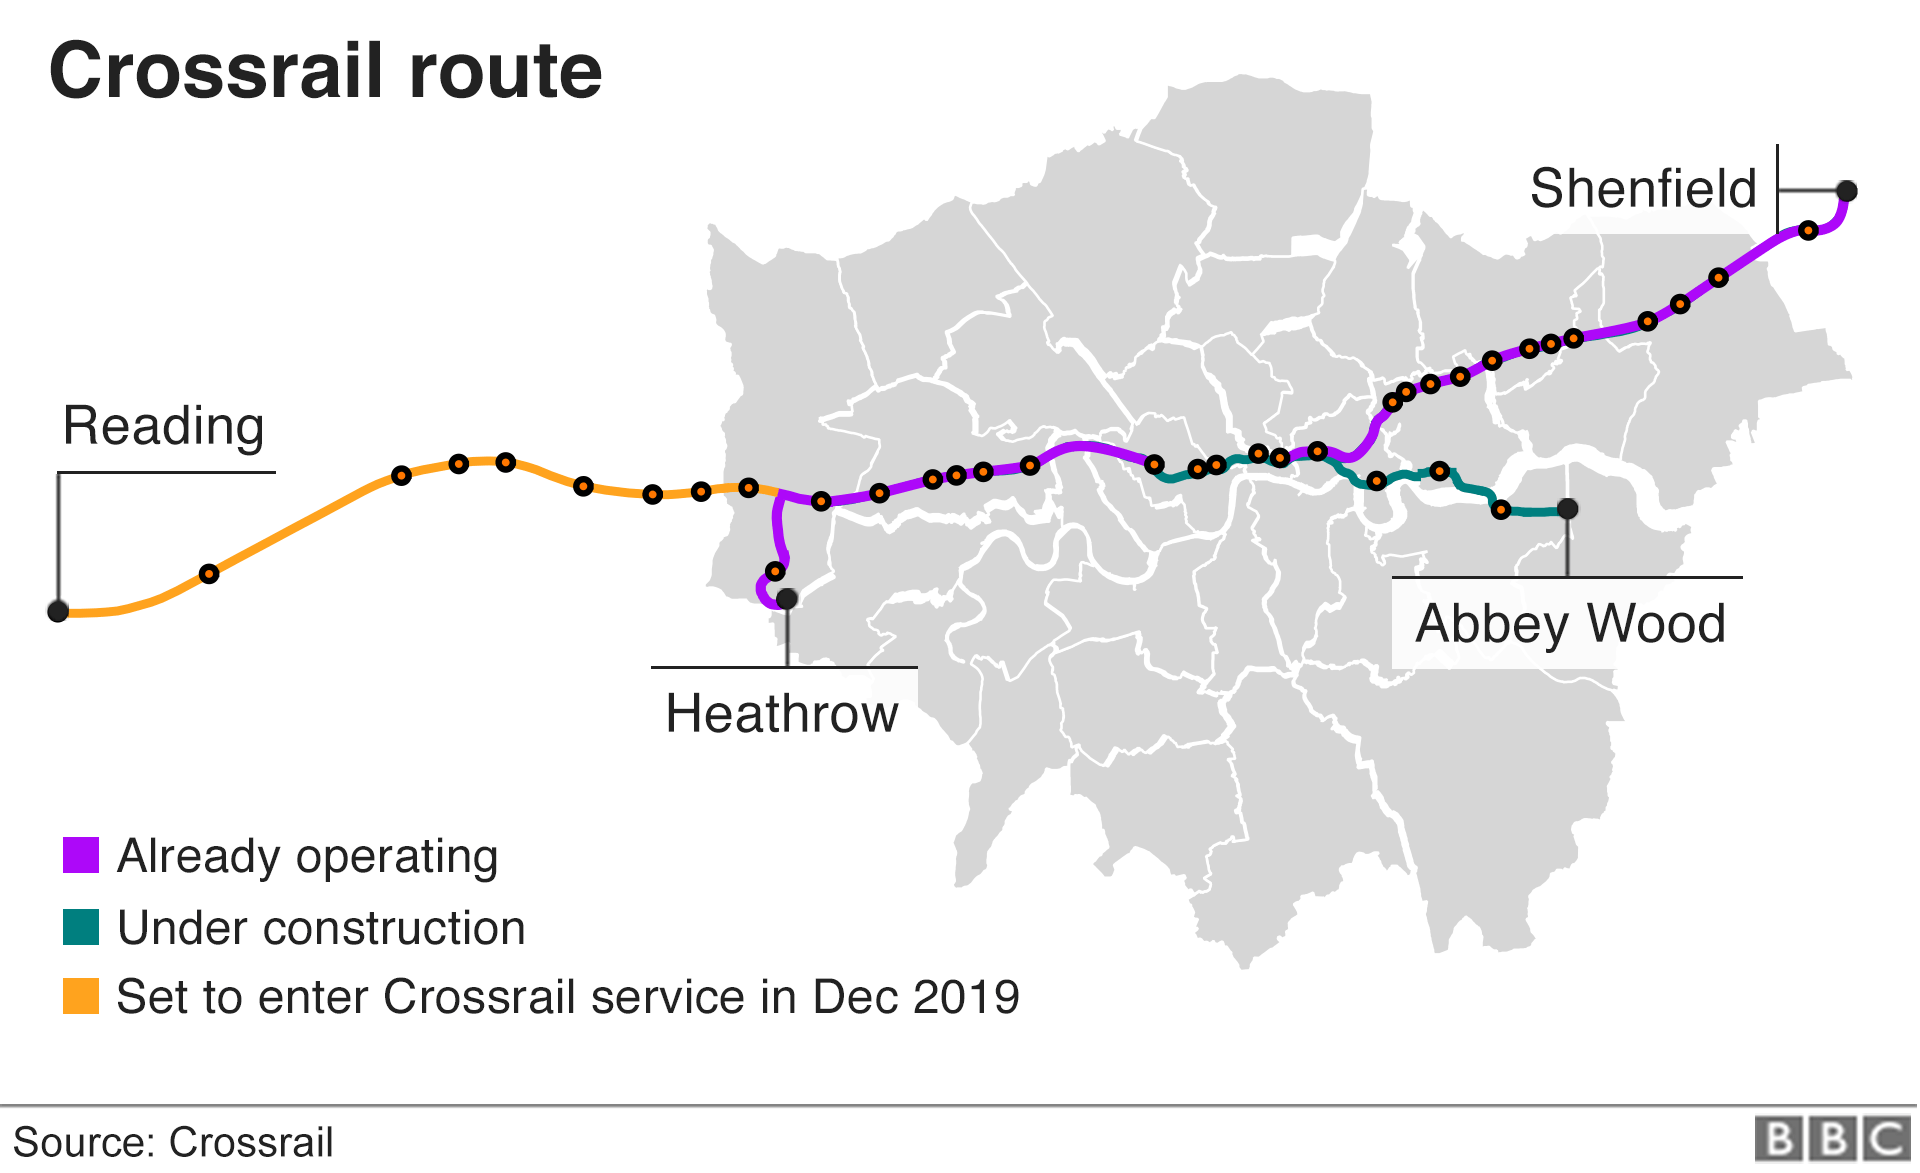 Map showing the Crossrail route